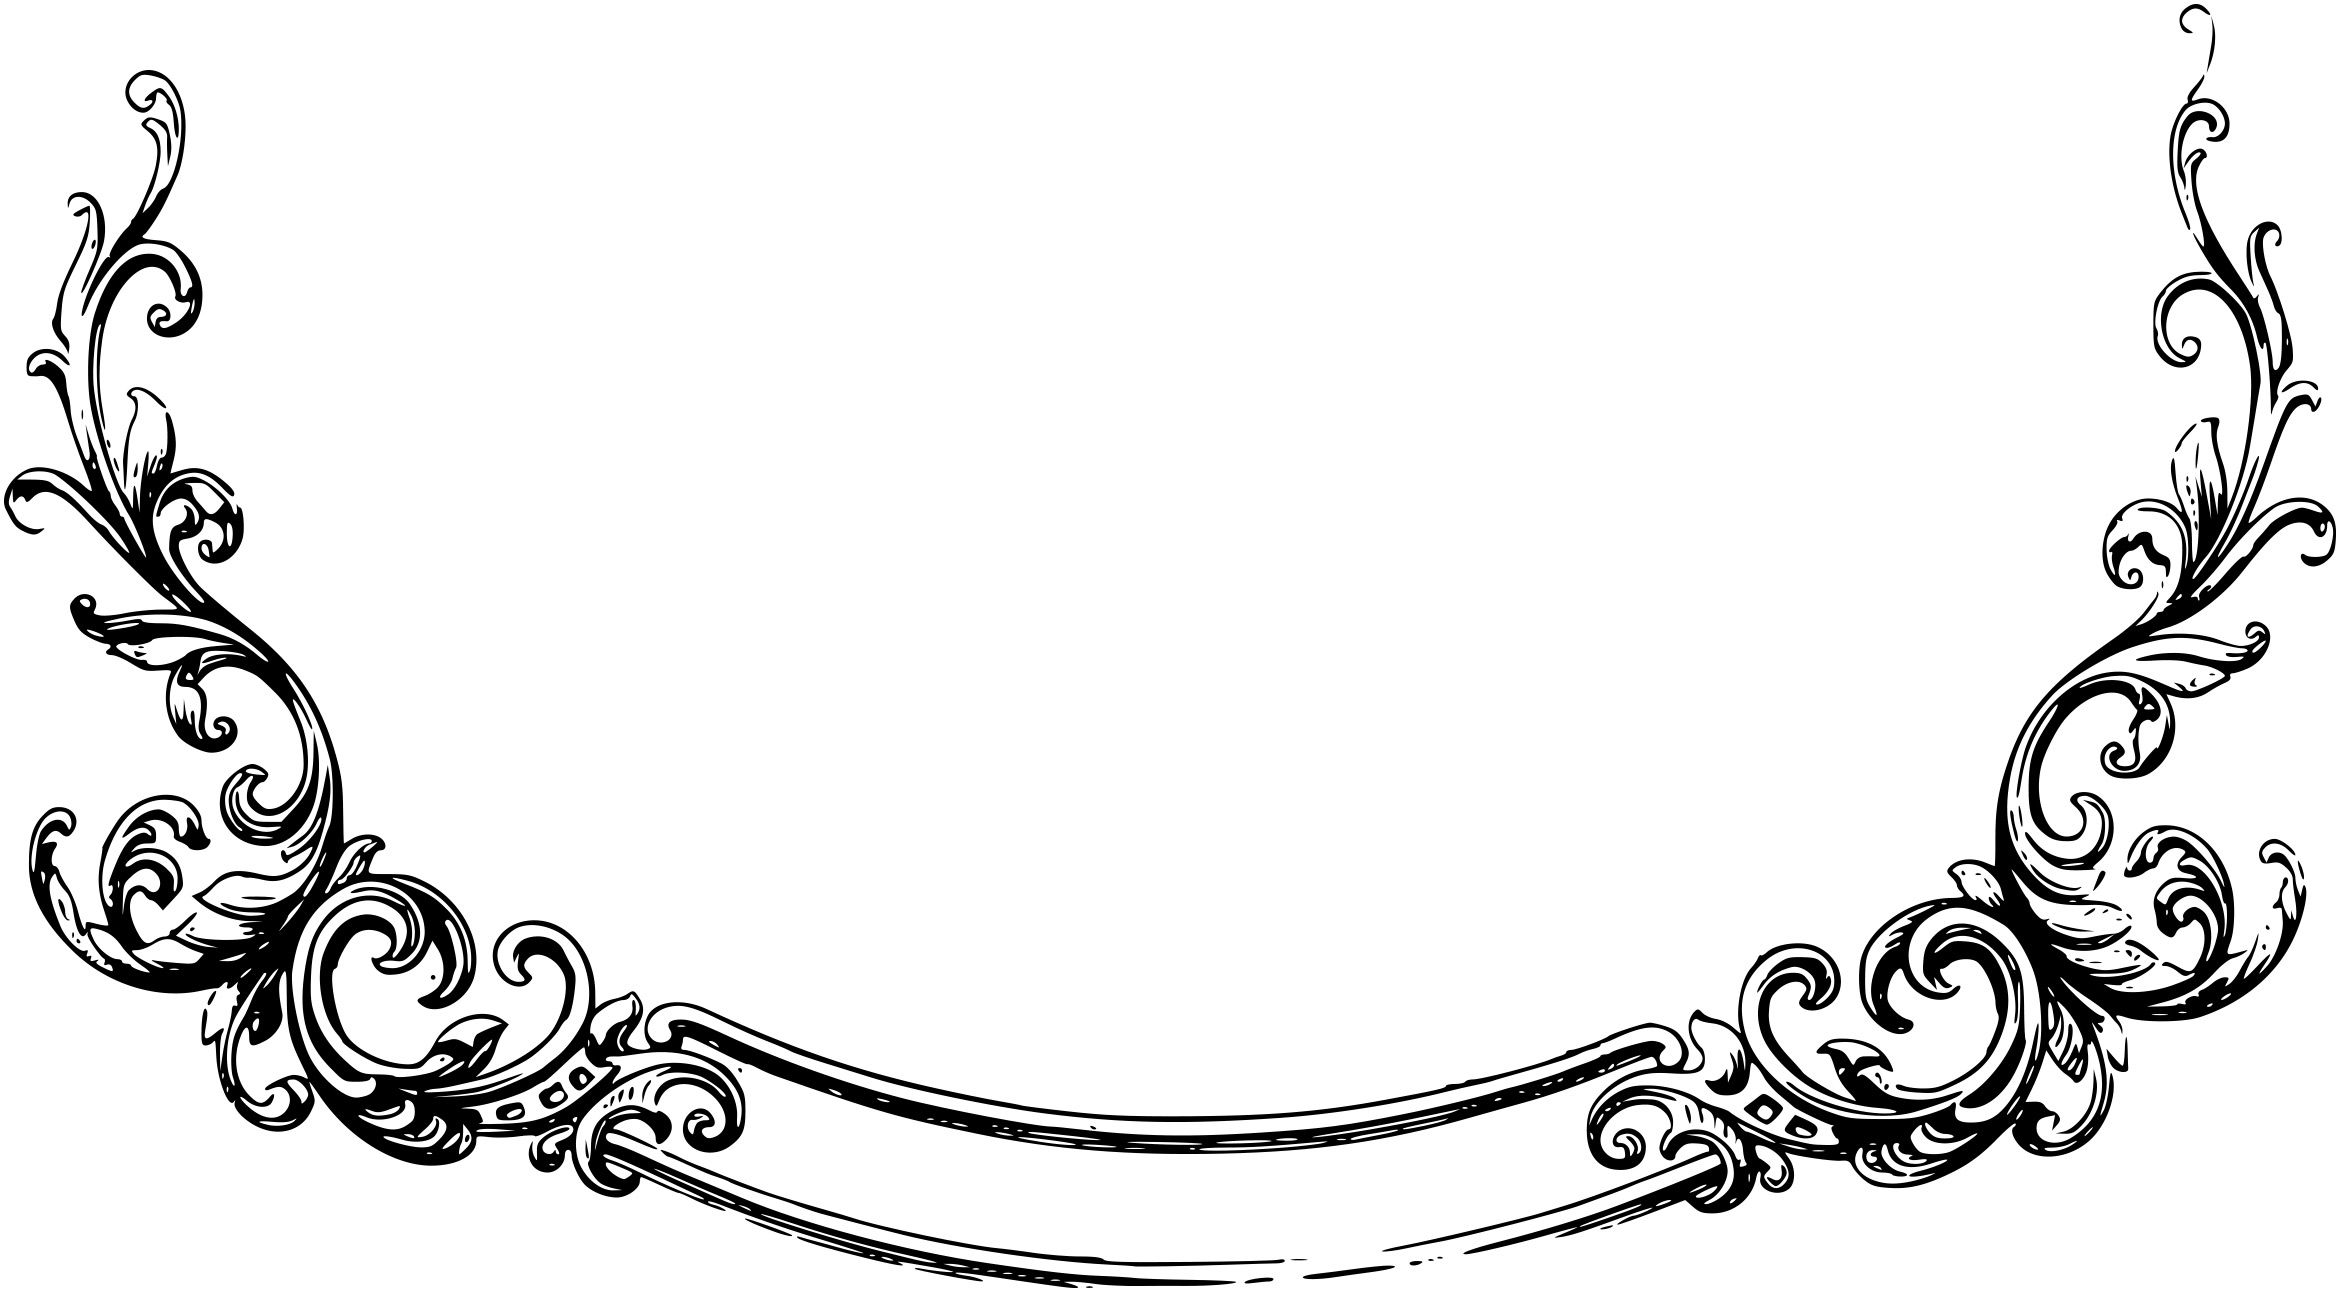 scroll clipart border